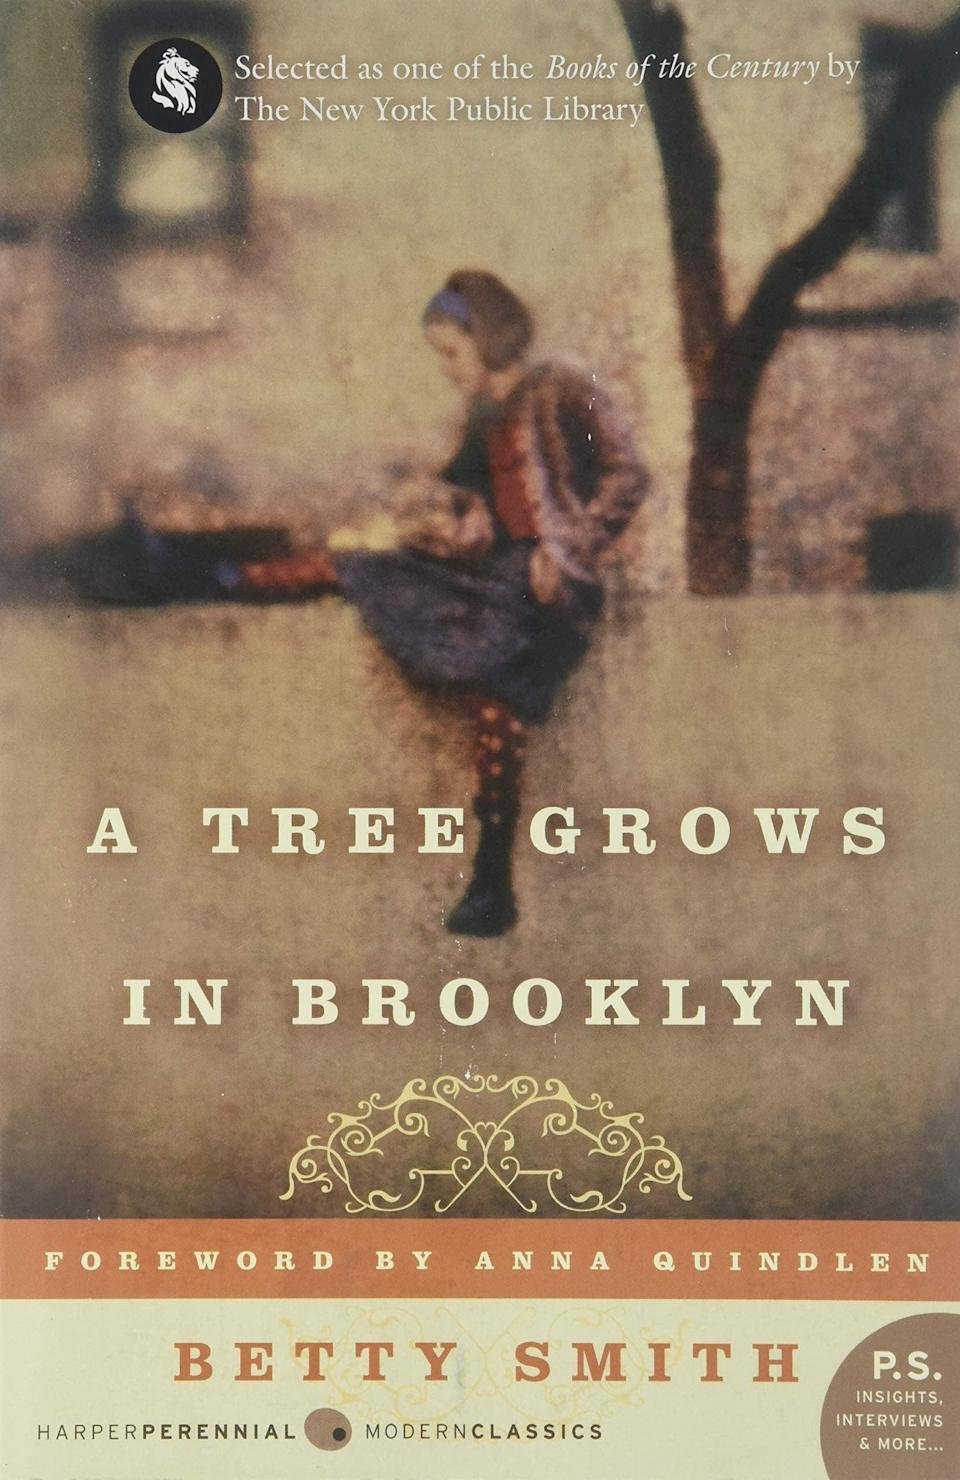 """<p>""""I first read <span><strong>A Tree Grows in Brooklyn</strong></span> ($16, originally $19) as a preteen and thought it was the best book I'd ever read. A decade later, and I still feel the same magic I did then. It's a coming-of-age story that I can still relate to, and it will make you feel everything all at once. I find something new to absorb each time I read it."""" - IY</p>"""